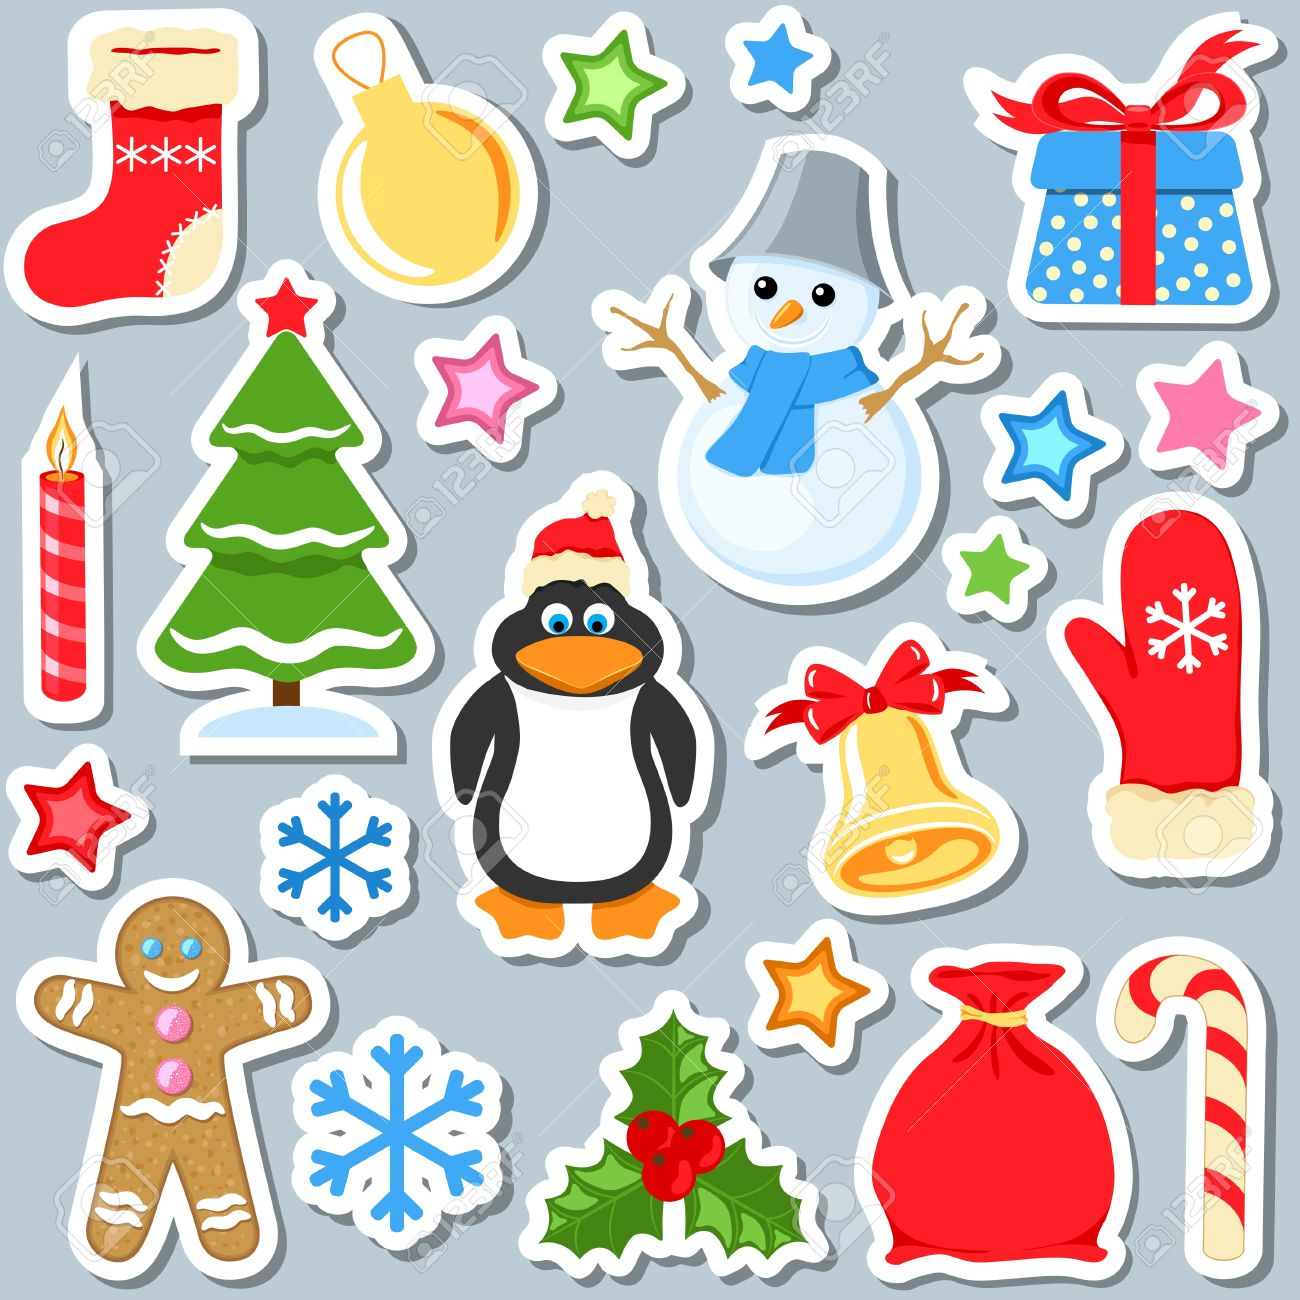 Christmas Stickers.Set Of Christmas Stickers